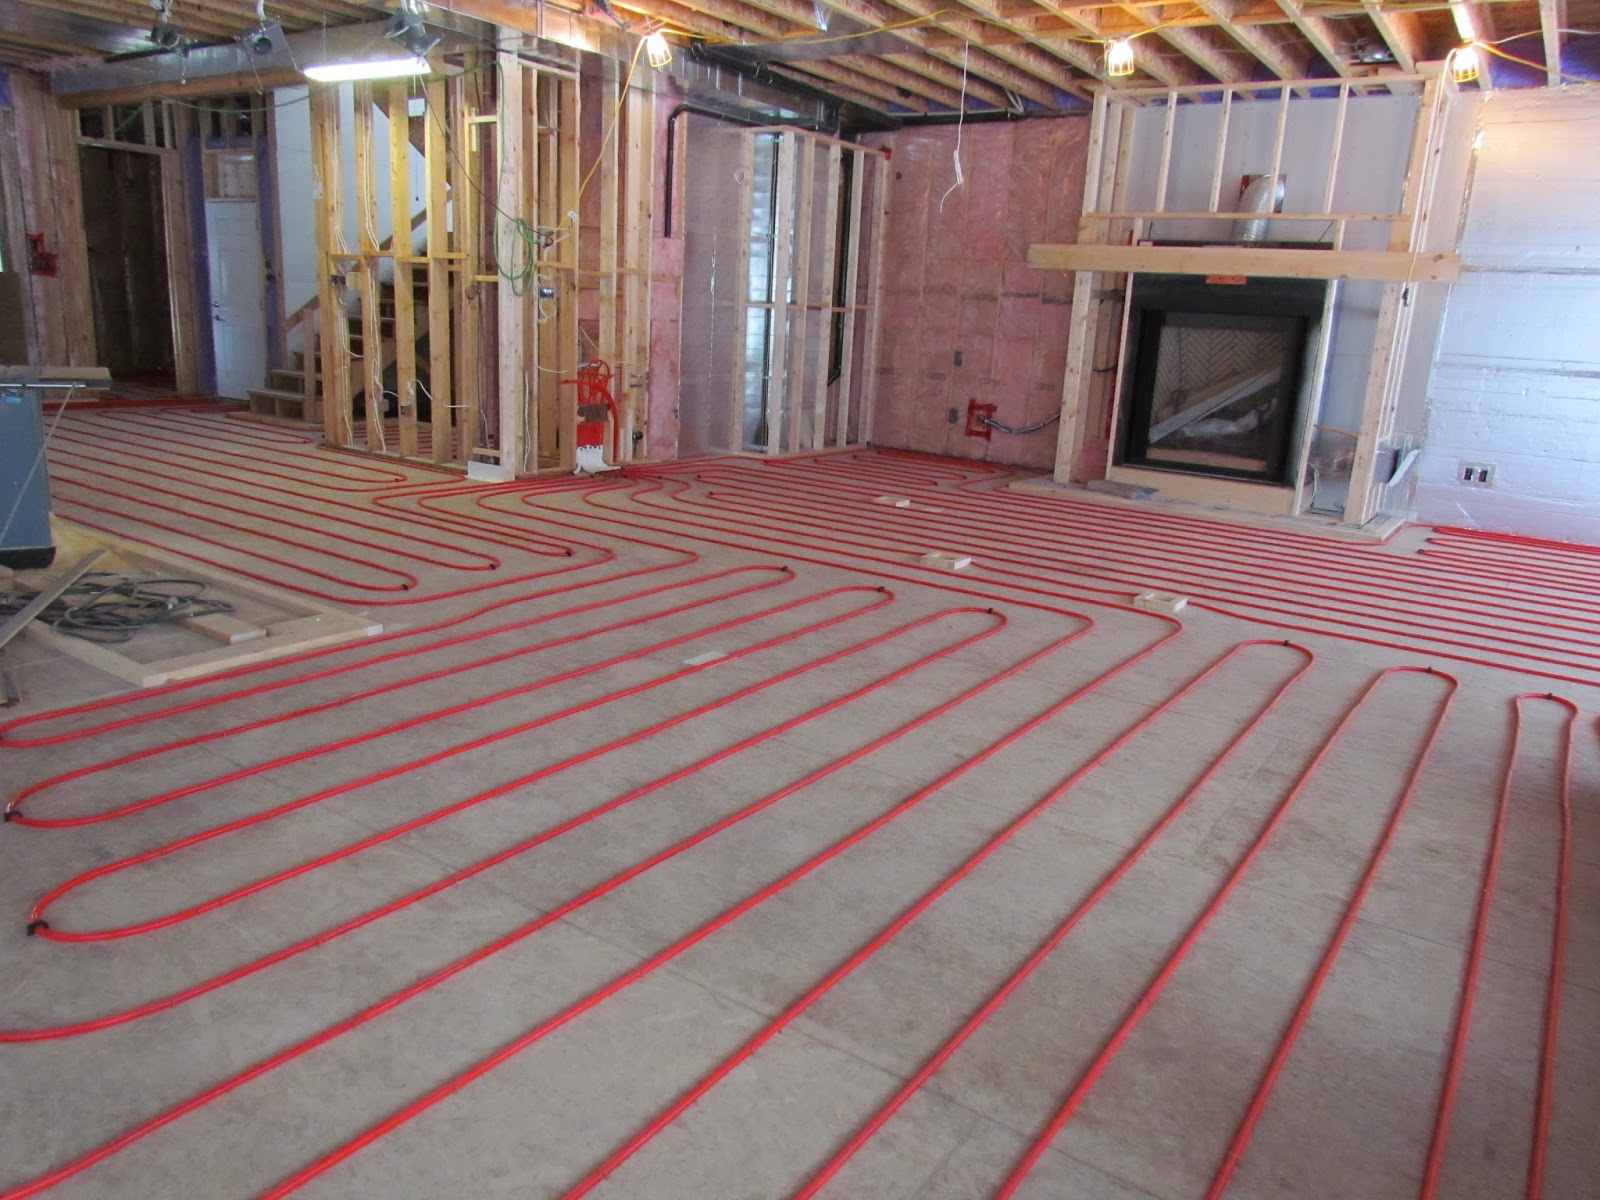 Ask rob radiant in floor heating in the basement Radiant floors